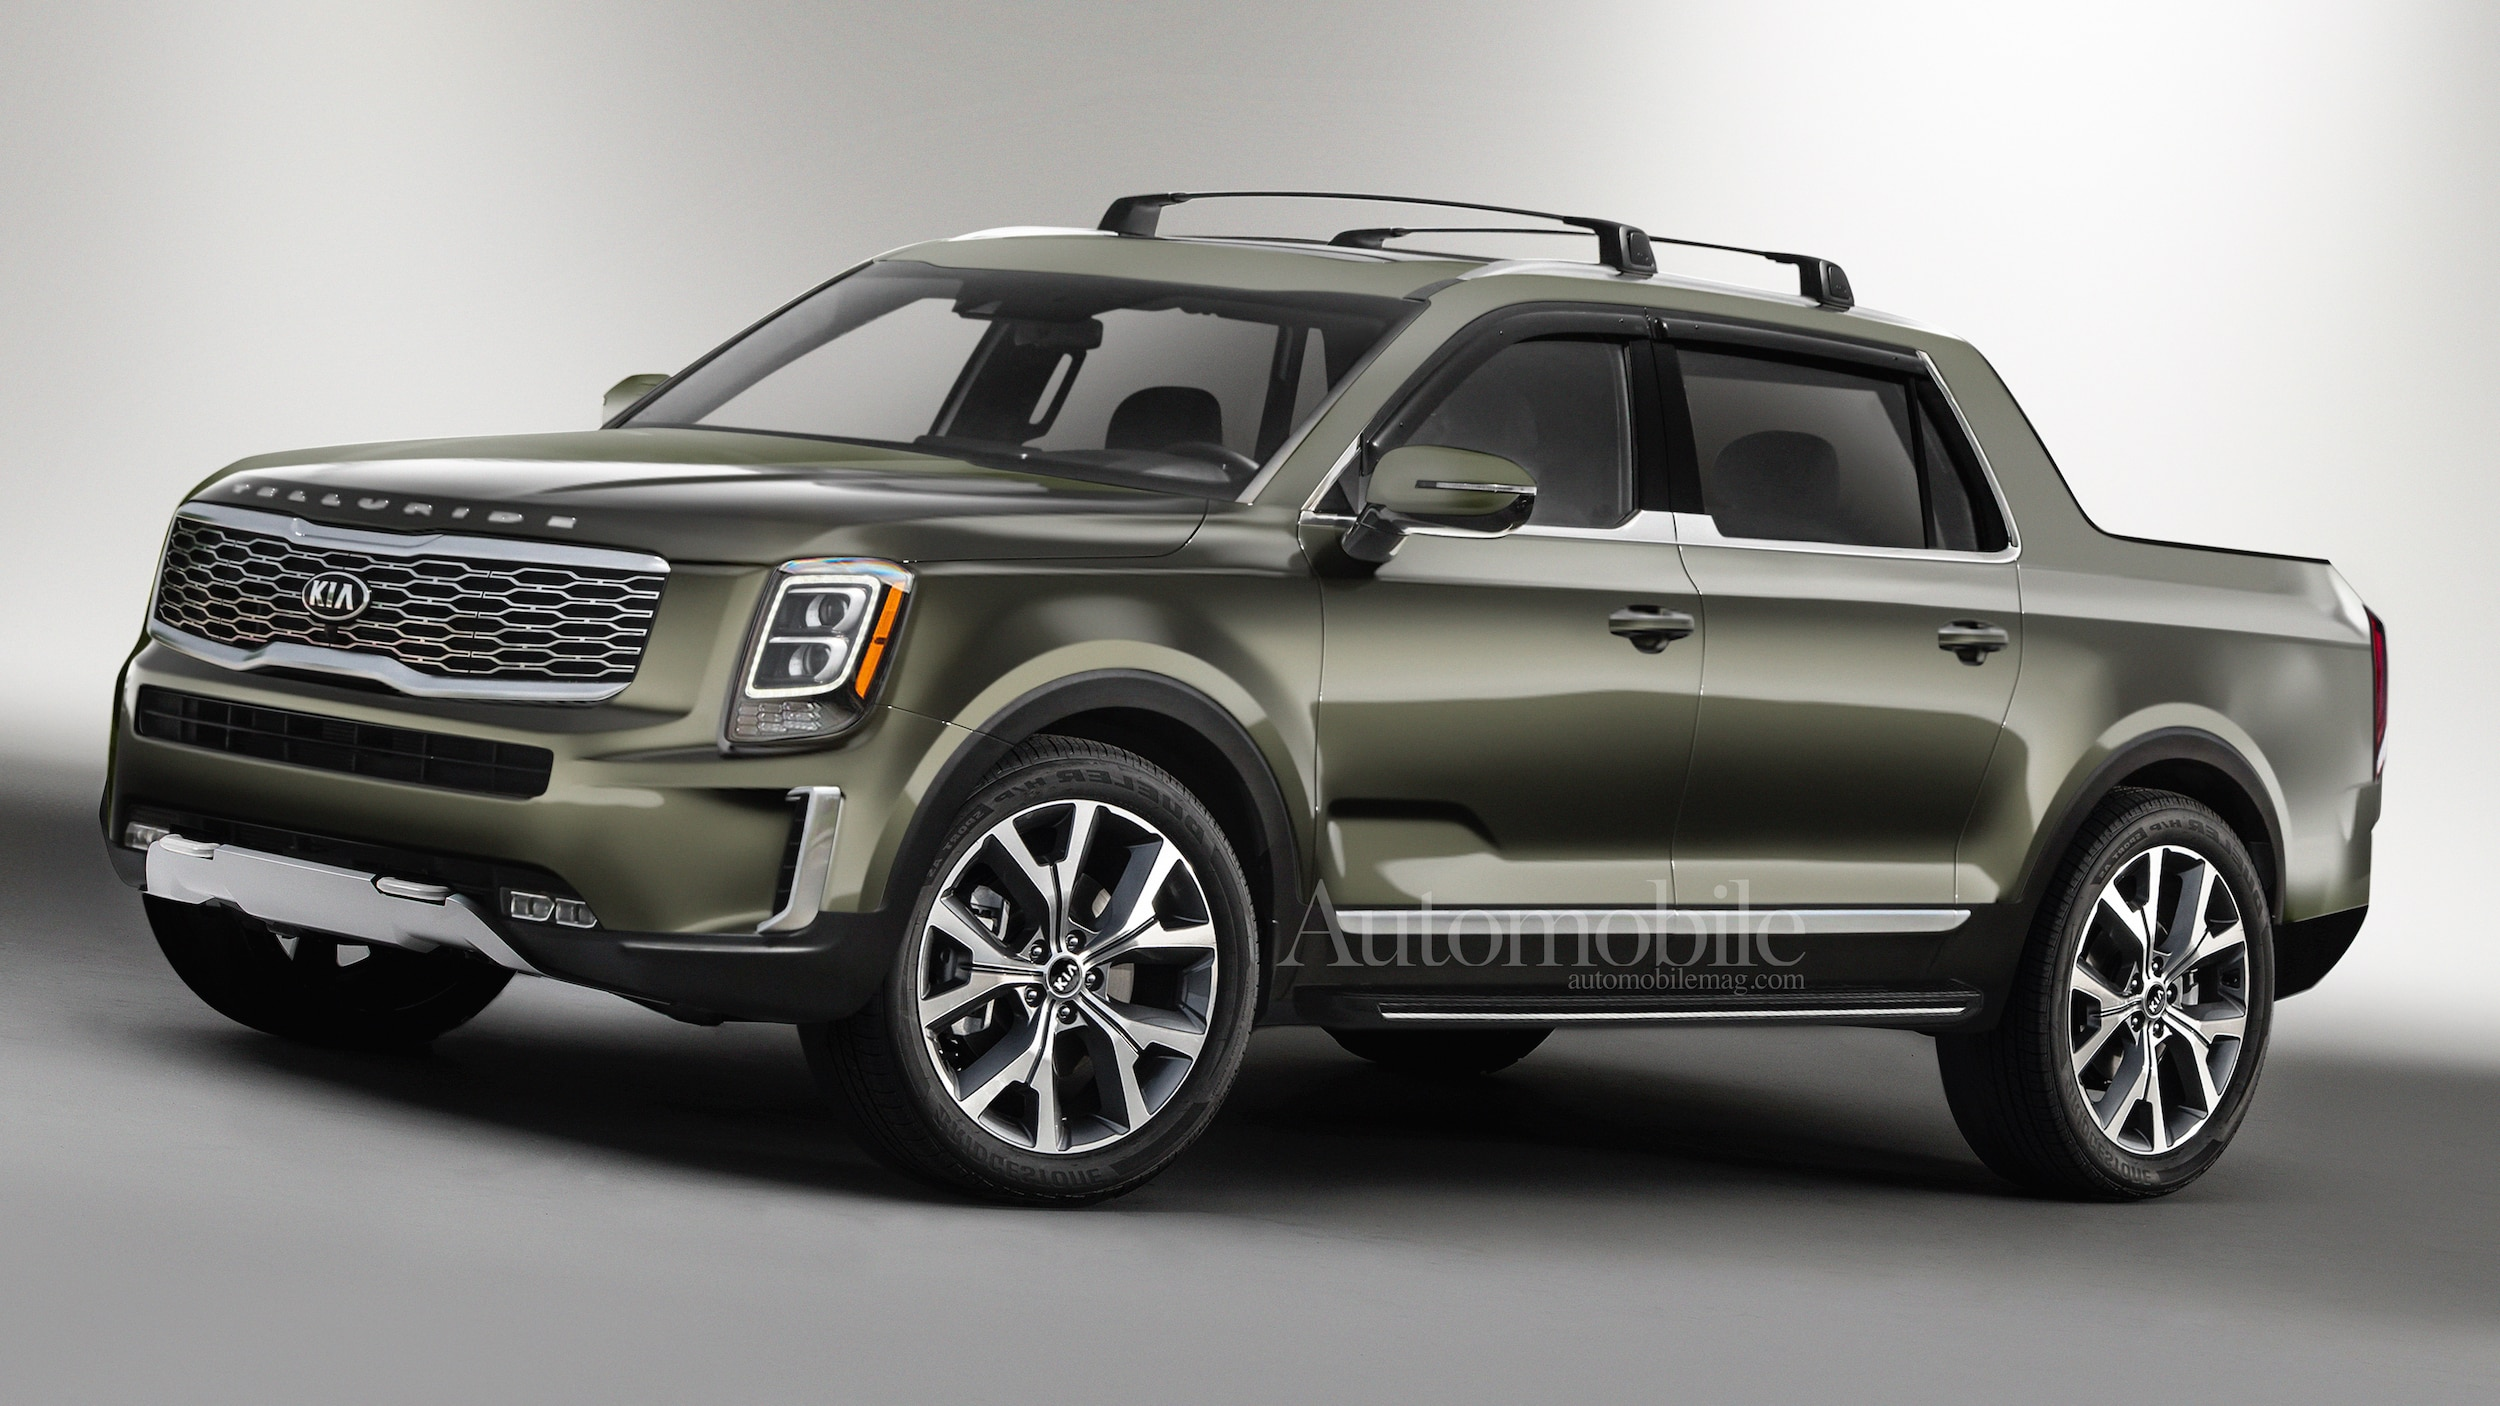 Kia Telluride Pickup Truck: Renderings + Rumors